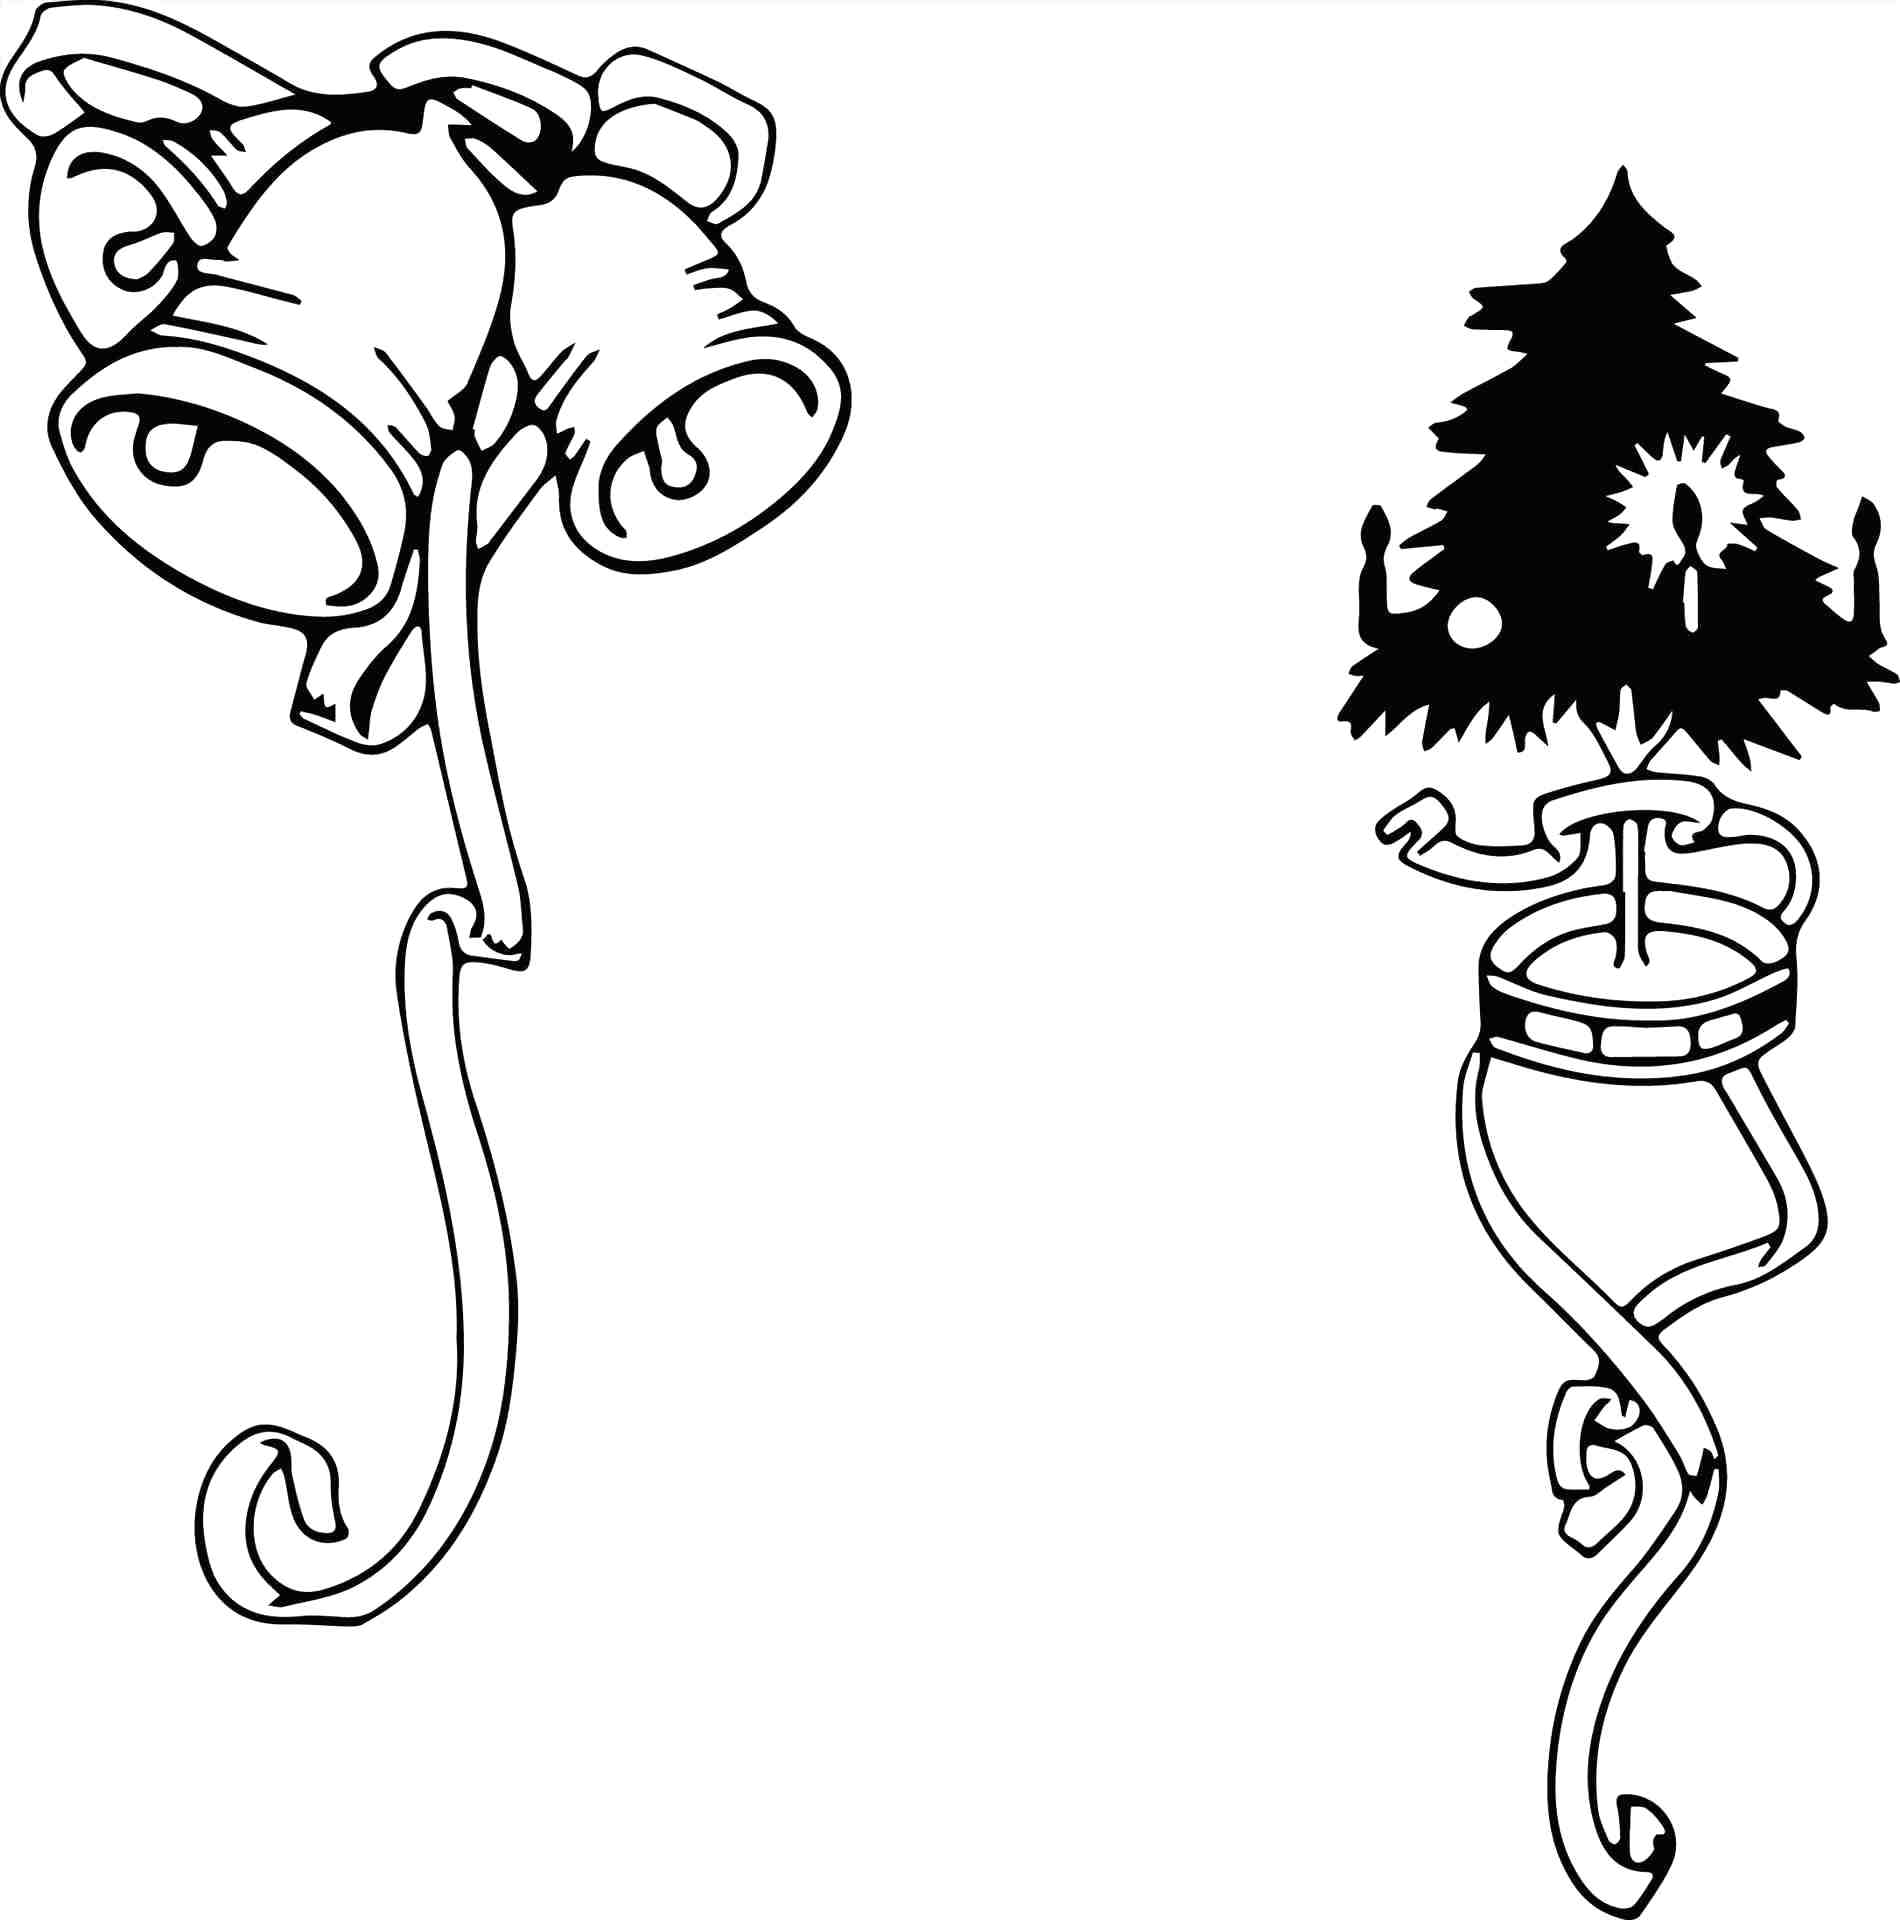 Christmas Lights Coloring Pages Printable With Light String 2022165